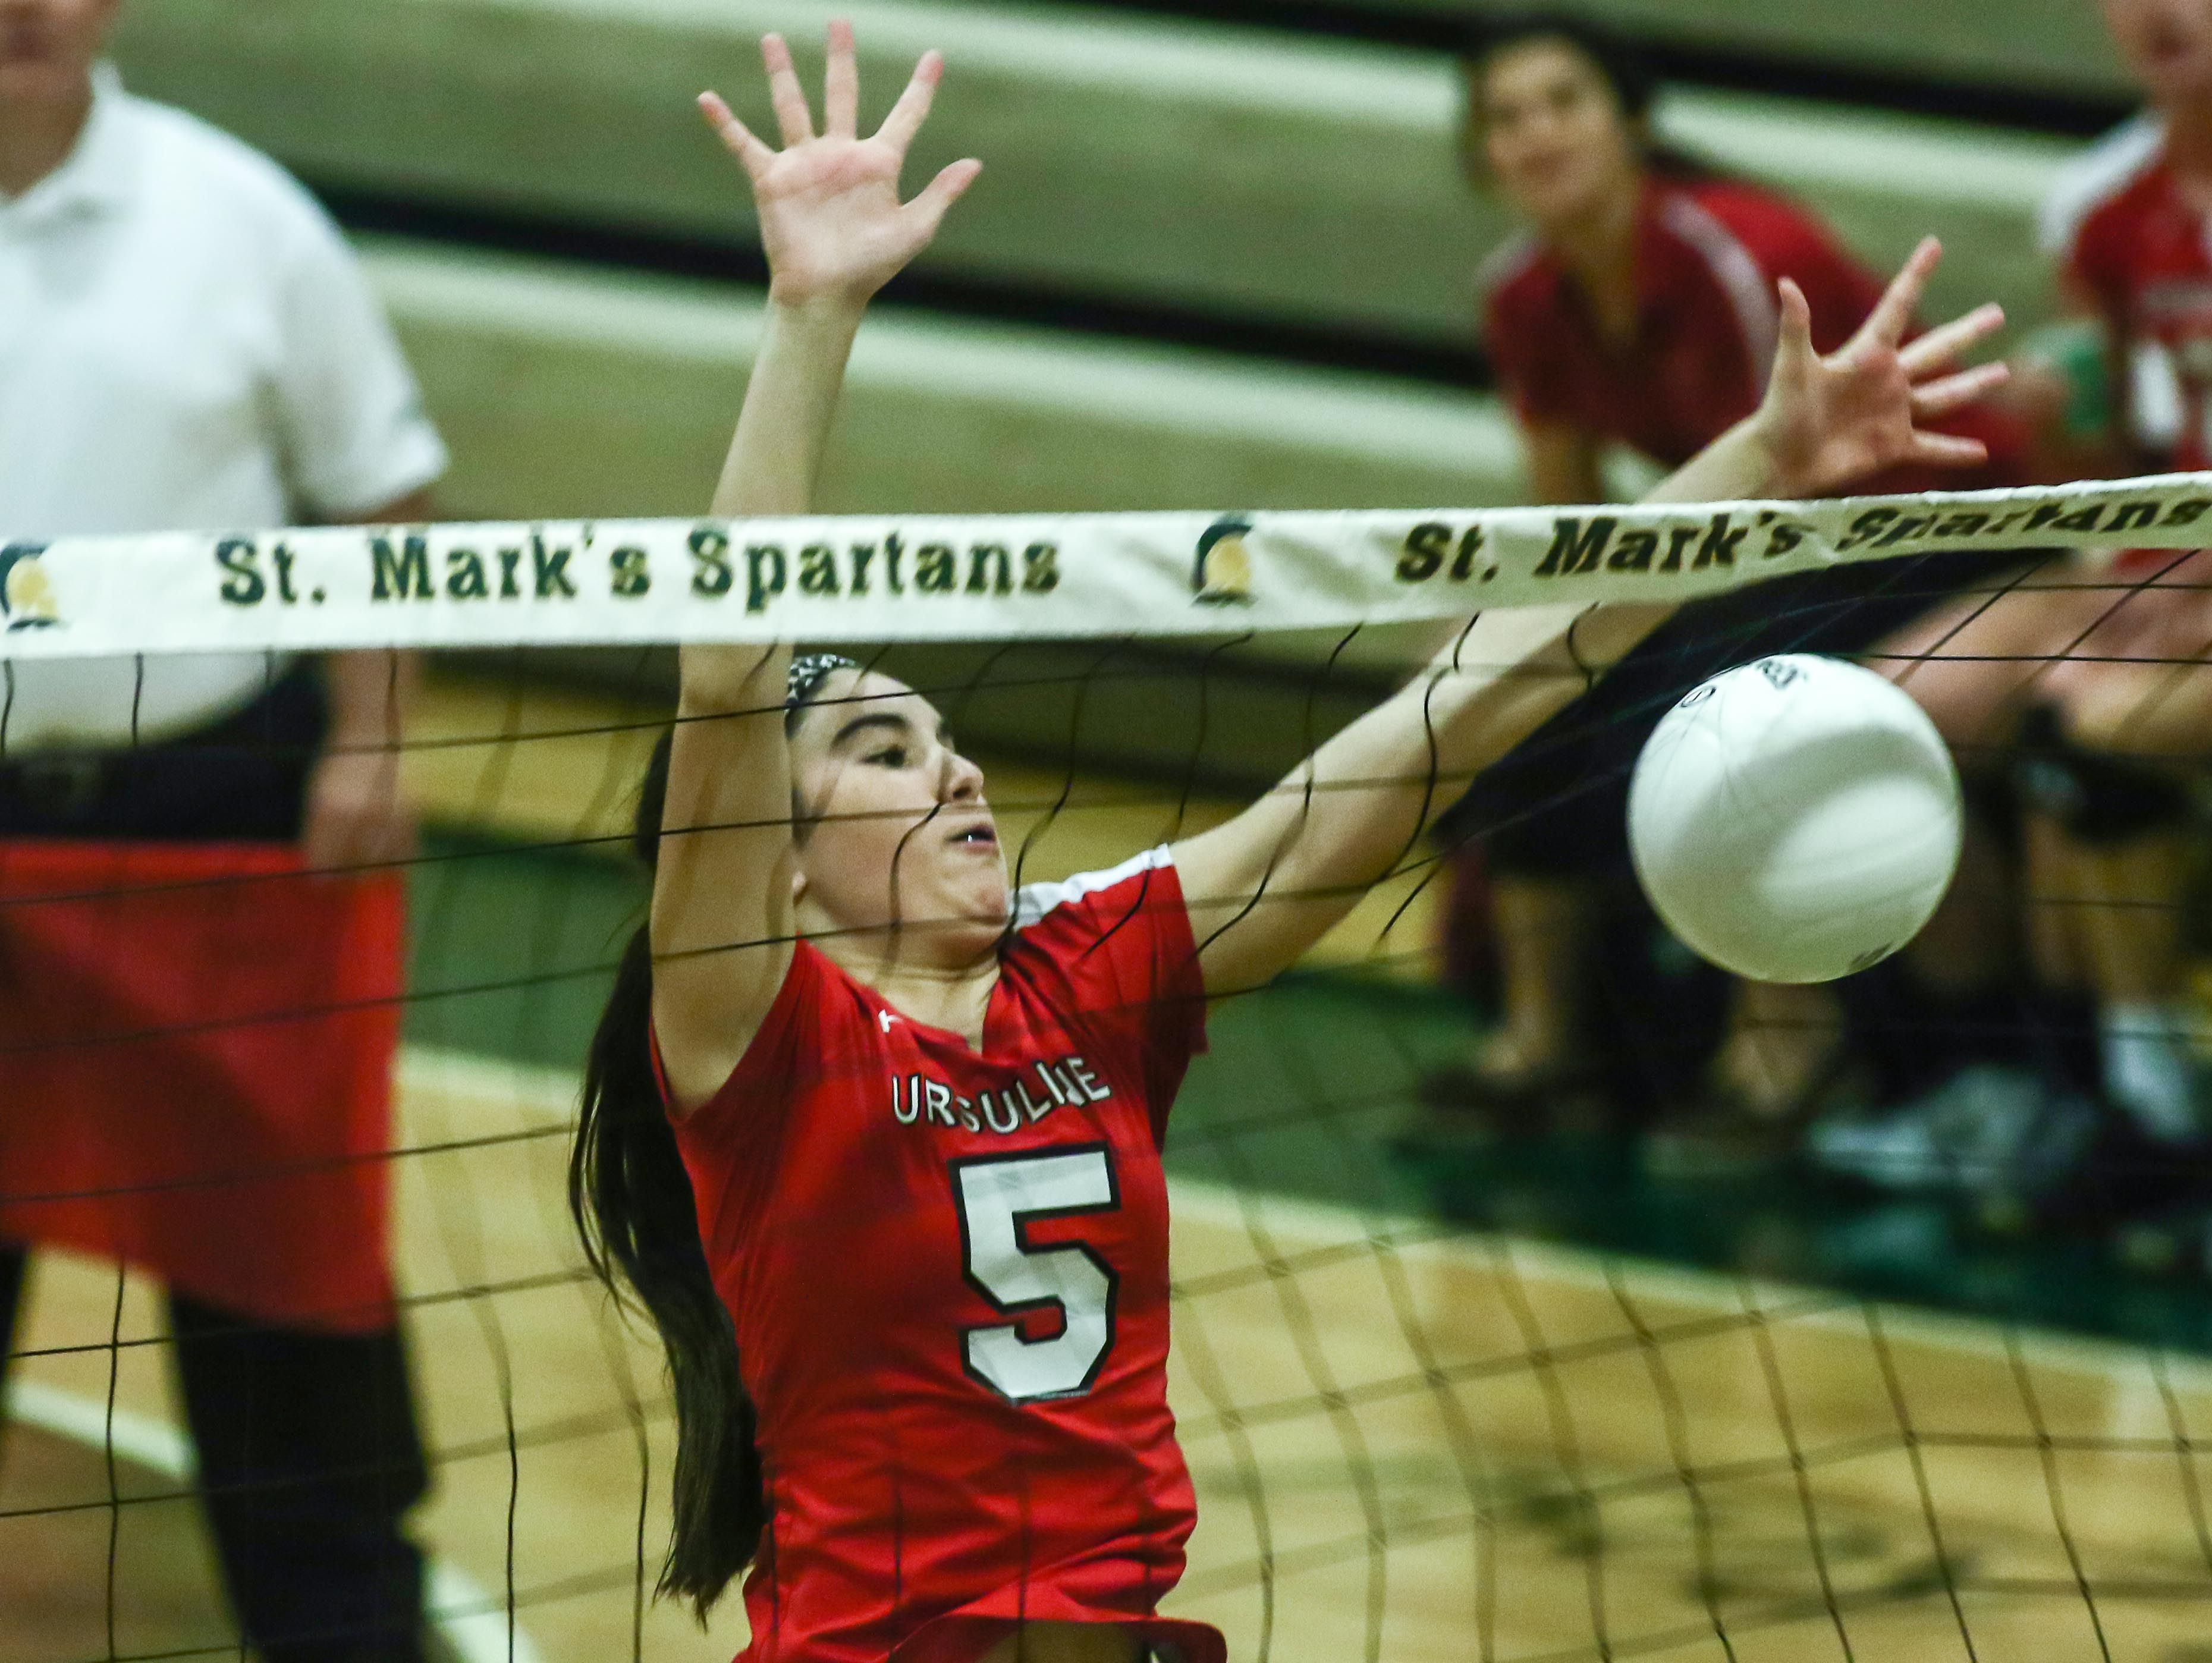 Ursuline's Kylie Nocket (5) jump up to block a spike during a DIAA Girls Volleyball quarterfinals match between Padua and Ursuline on Tuesday at St. Mark's High School in Wilmington.